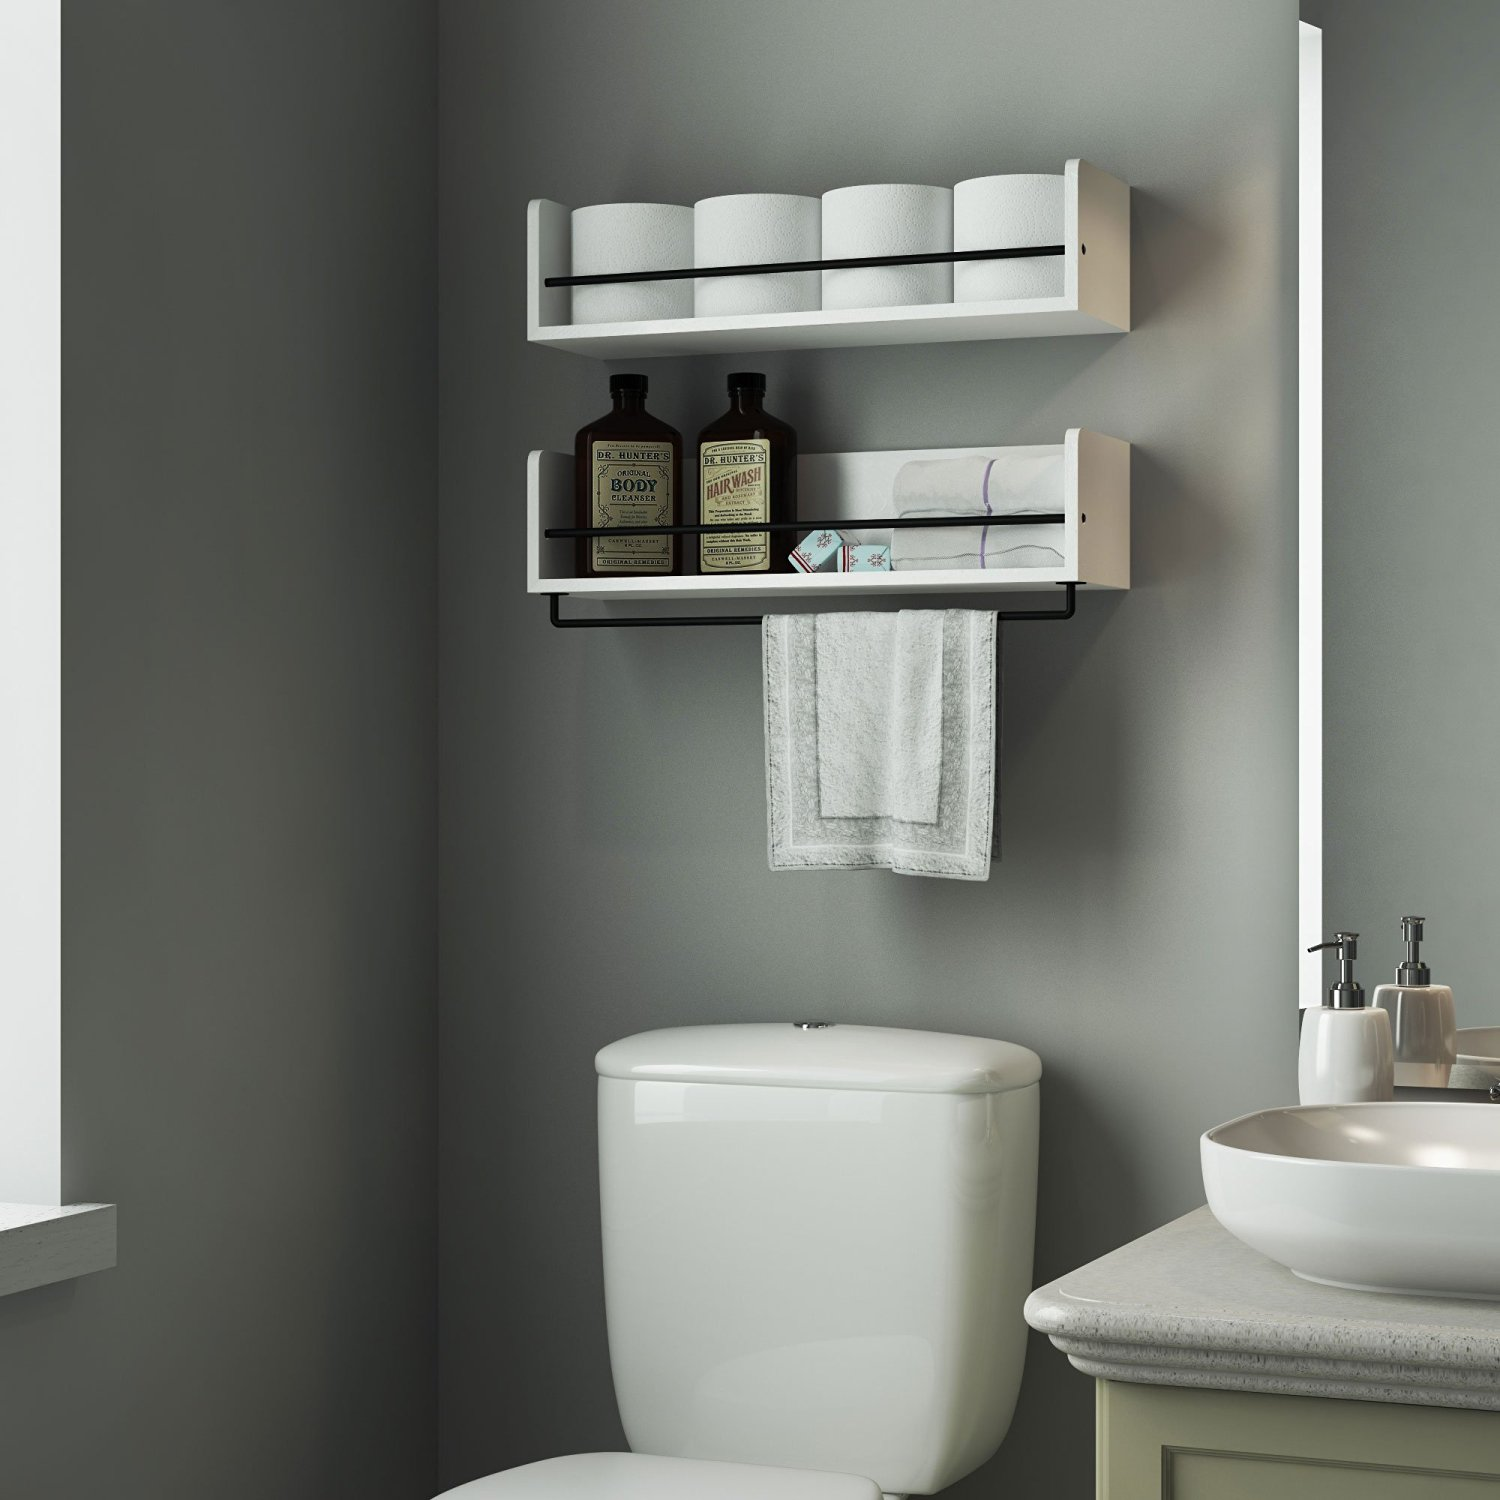 Beautiful White Shelves In The Bathroom Over Toilet Looks Stunning With That Paint Color